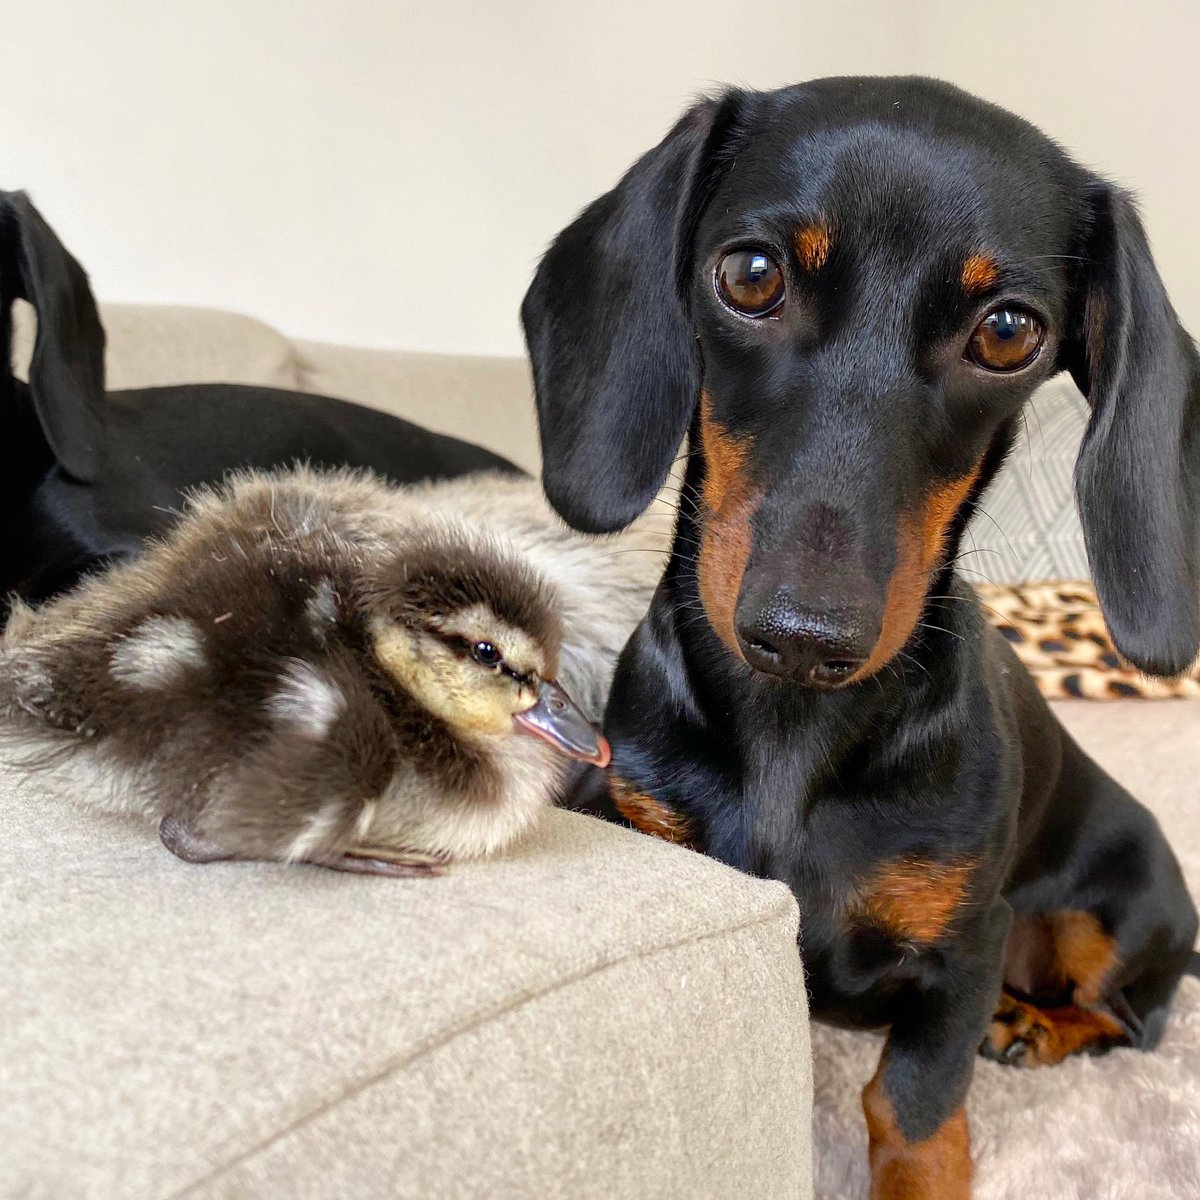 Coco & Duckling. #dachshunds #ducklings #duck #sausagedog #loulouminidachshund